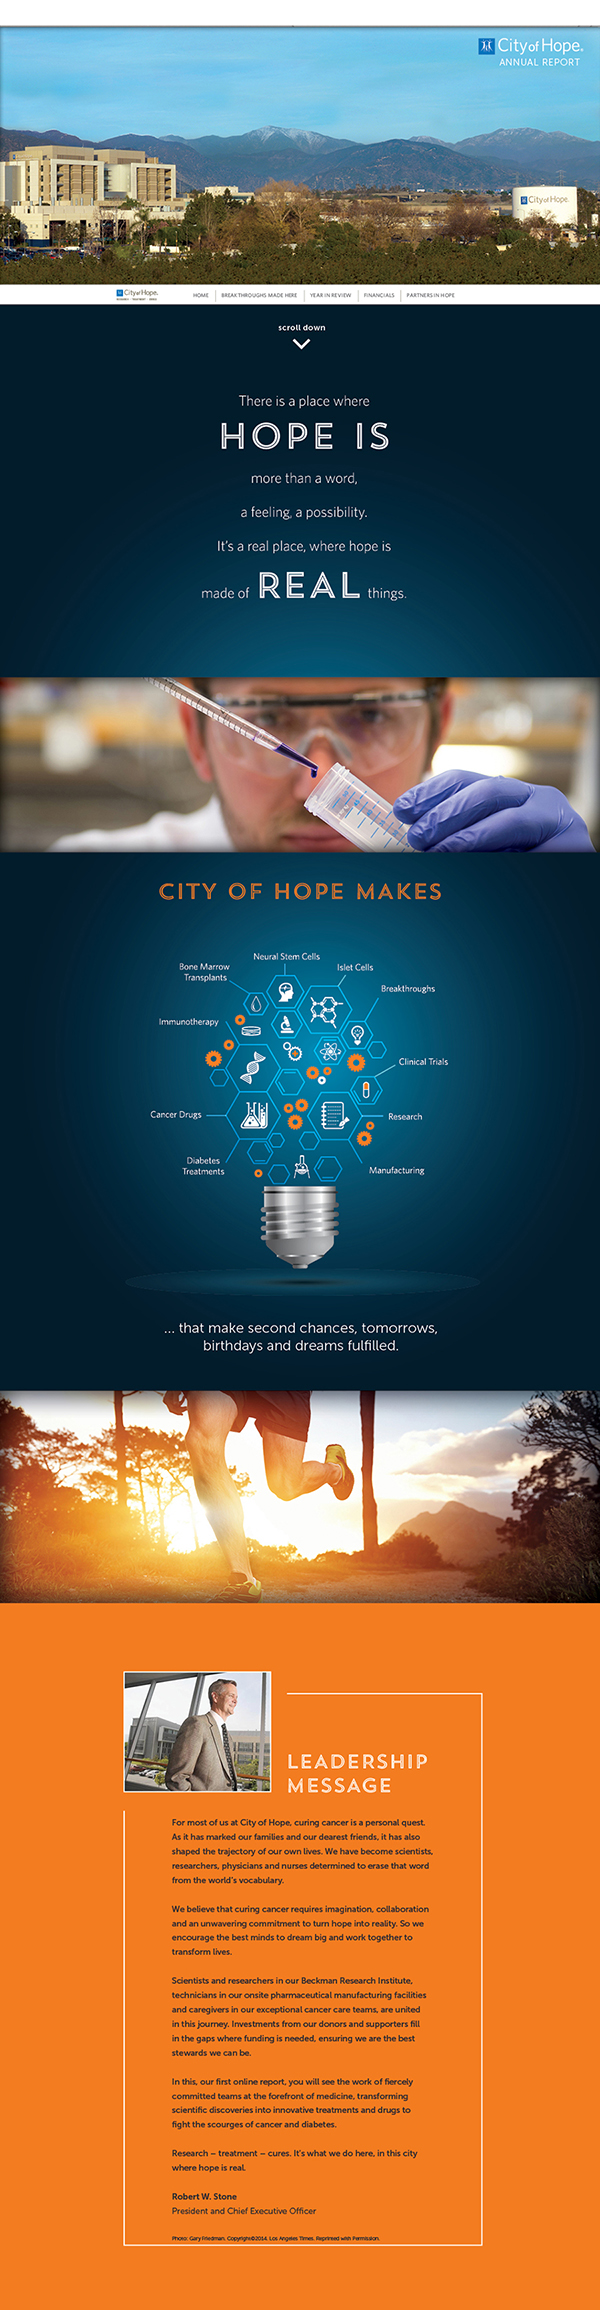 City of Hope 2013 Annual Report microsite